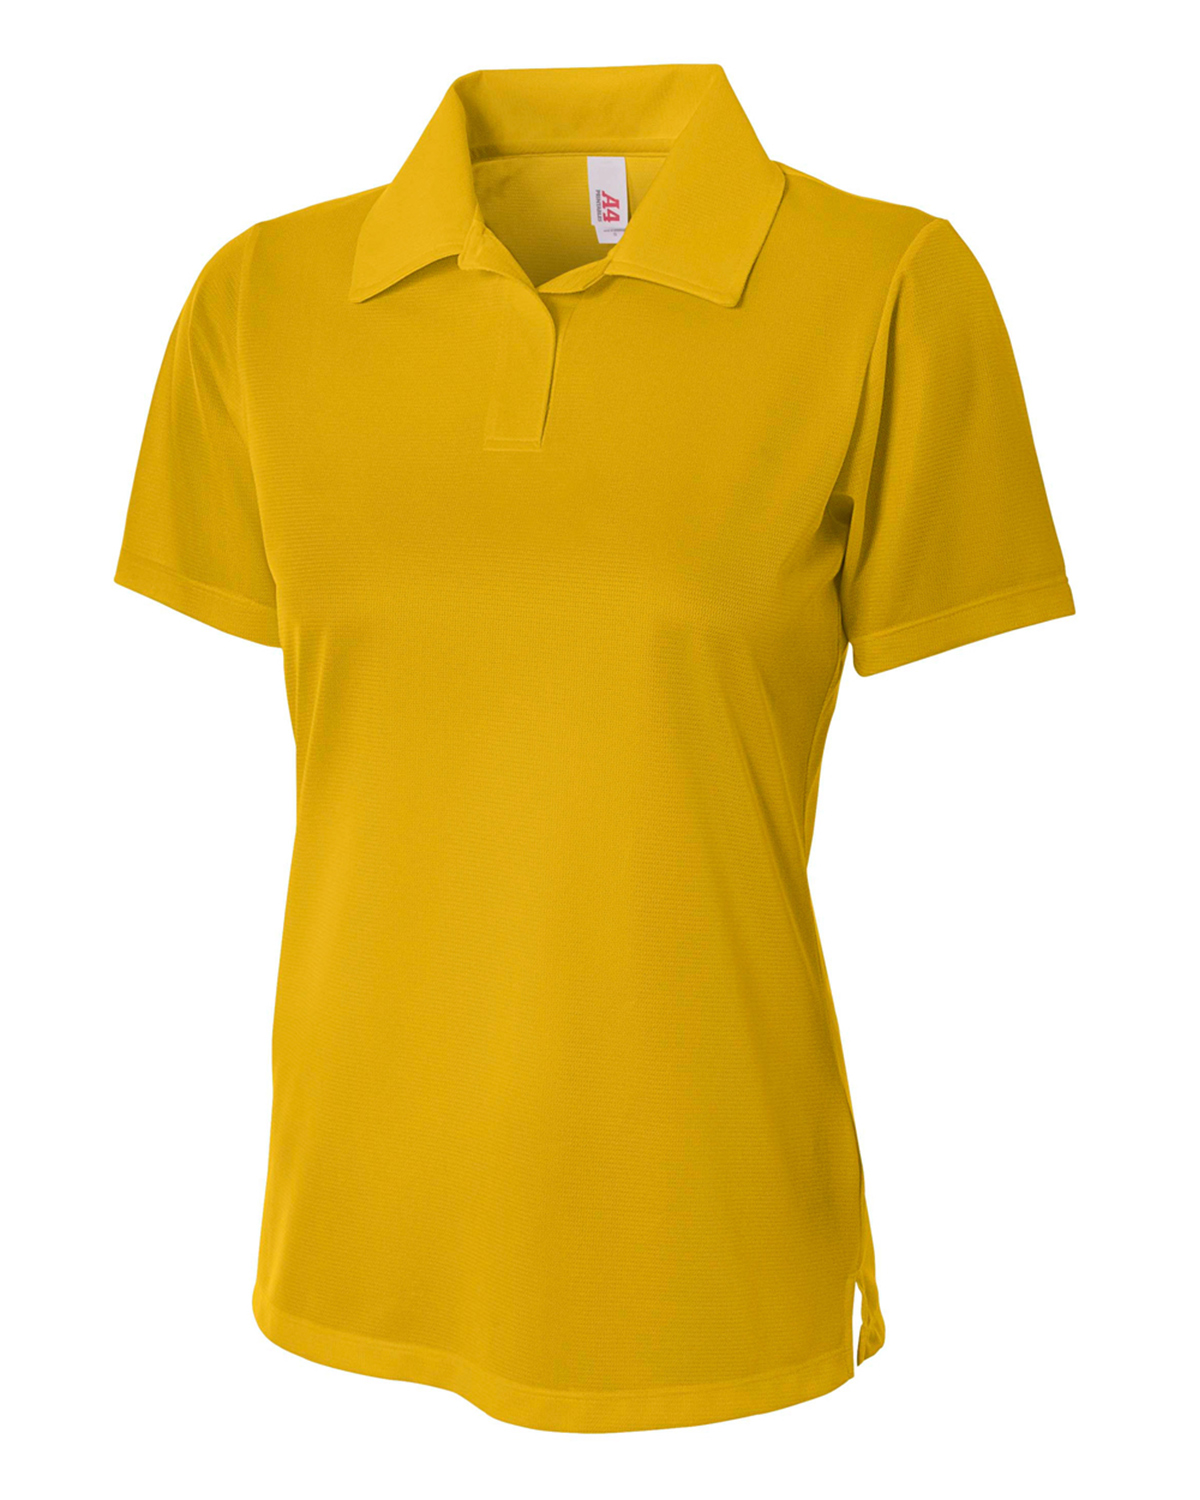 A4 Drop Ship NW3265 - Ladies' Textured Polo Shirt w/ Johnny Collar